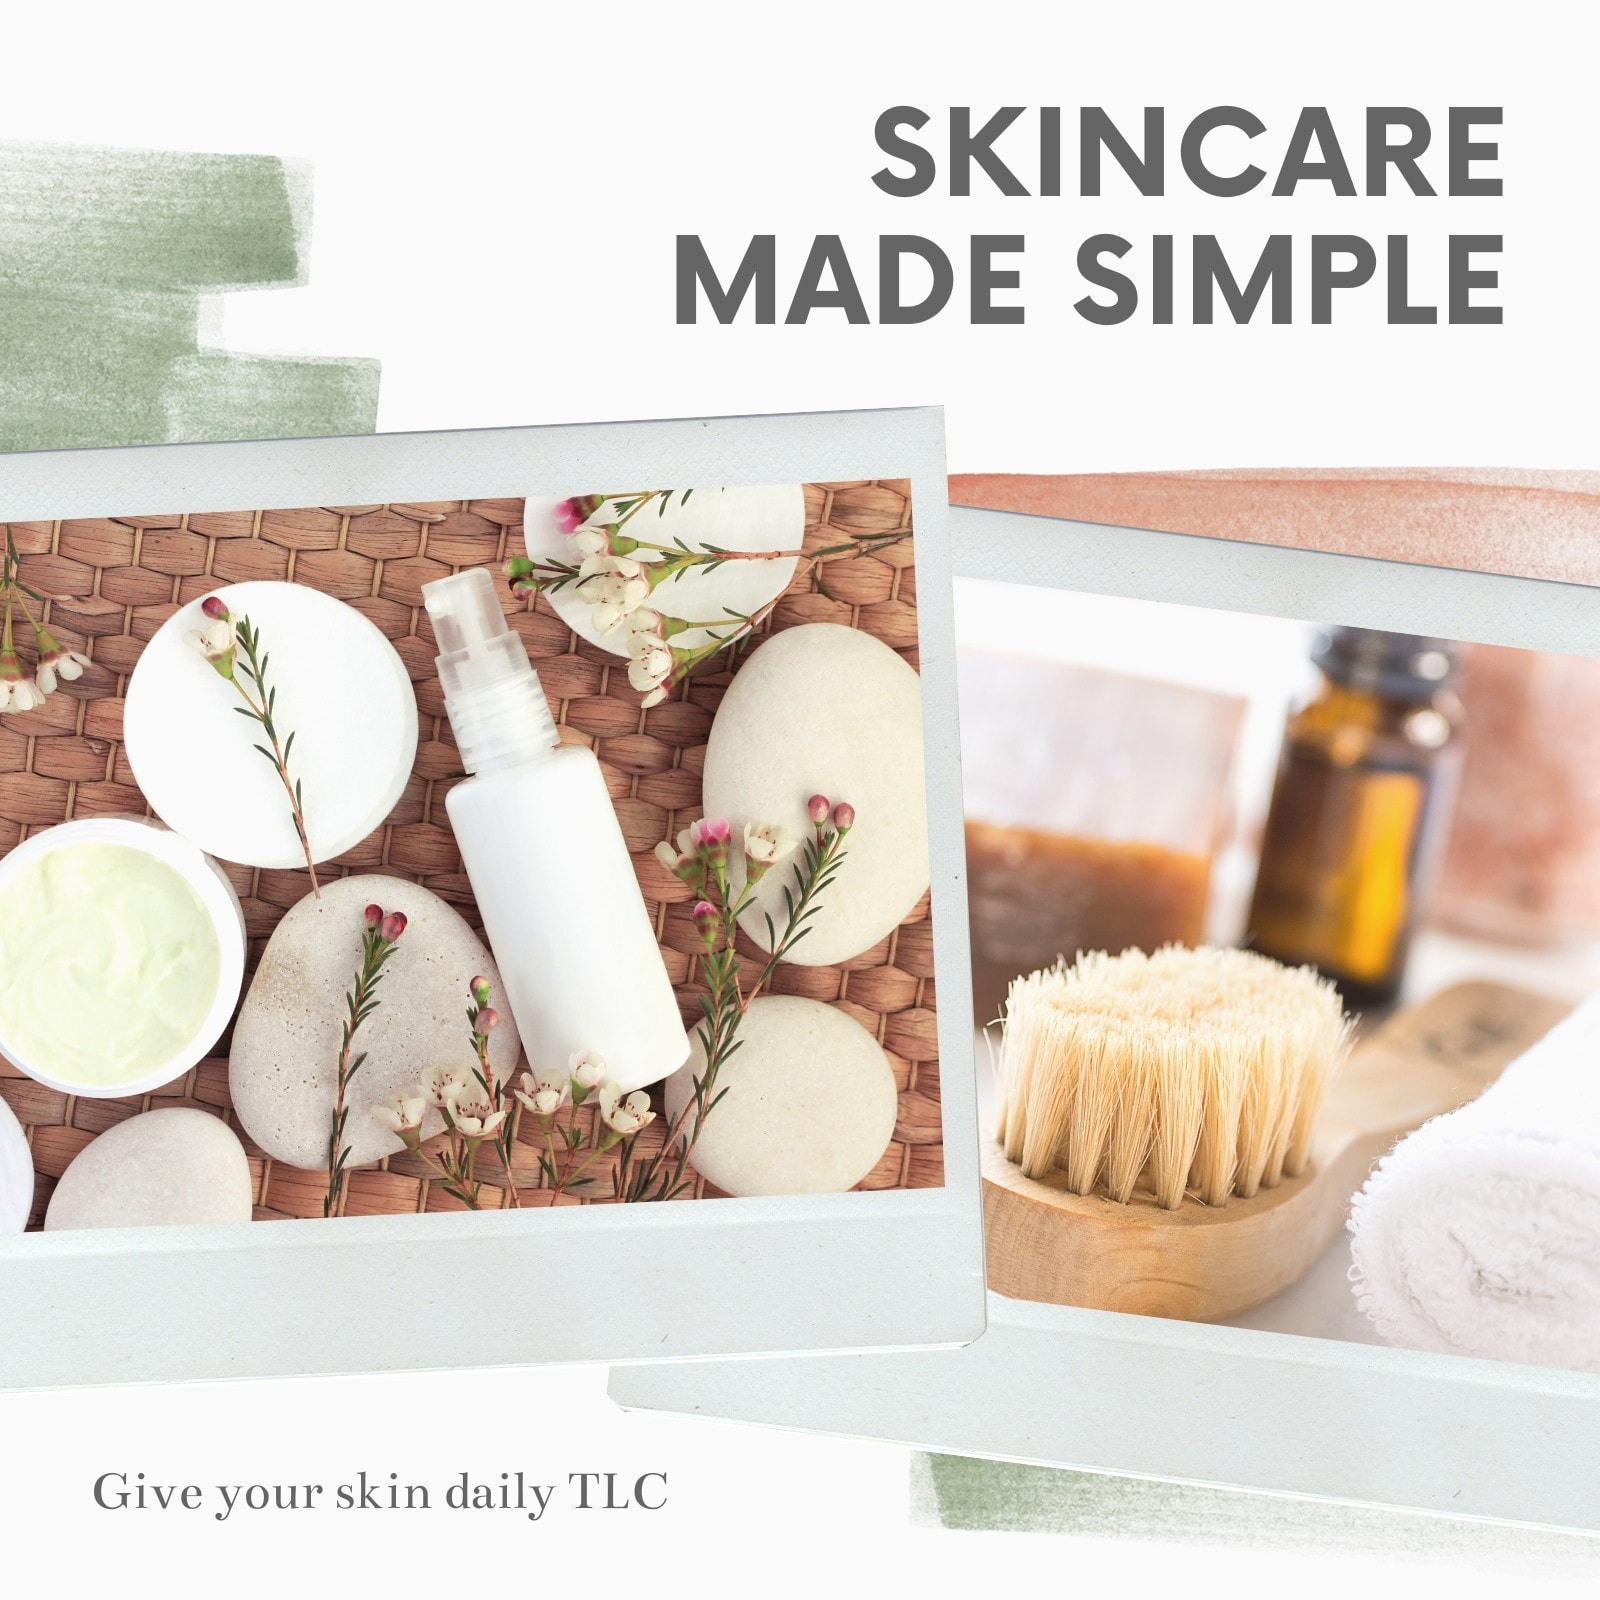 Grey and Green Freestyle Art Beauty Skincare Video Collage